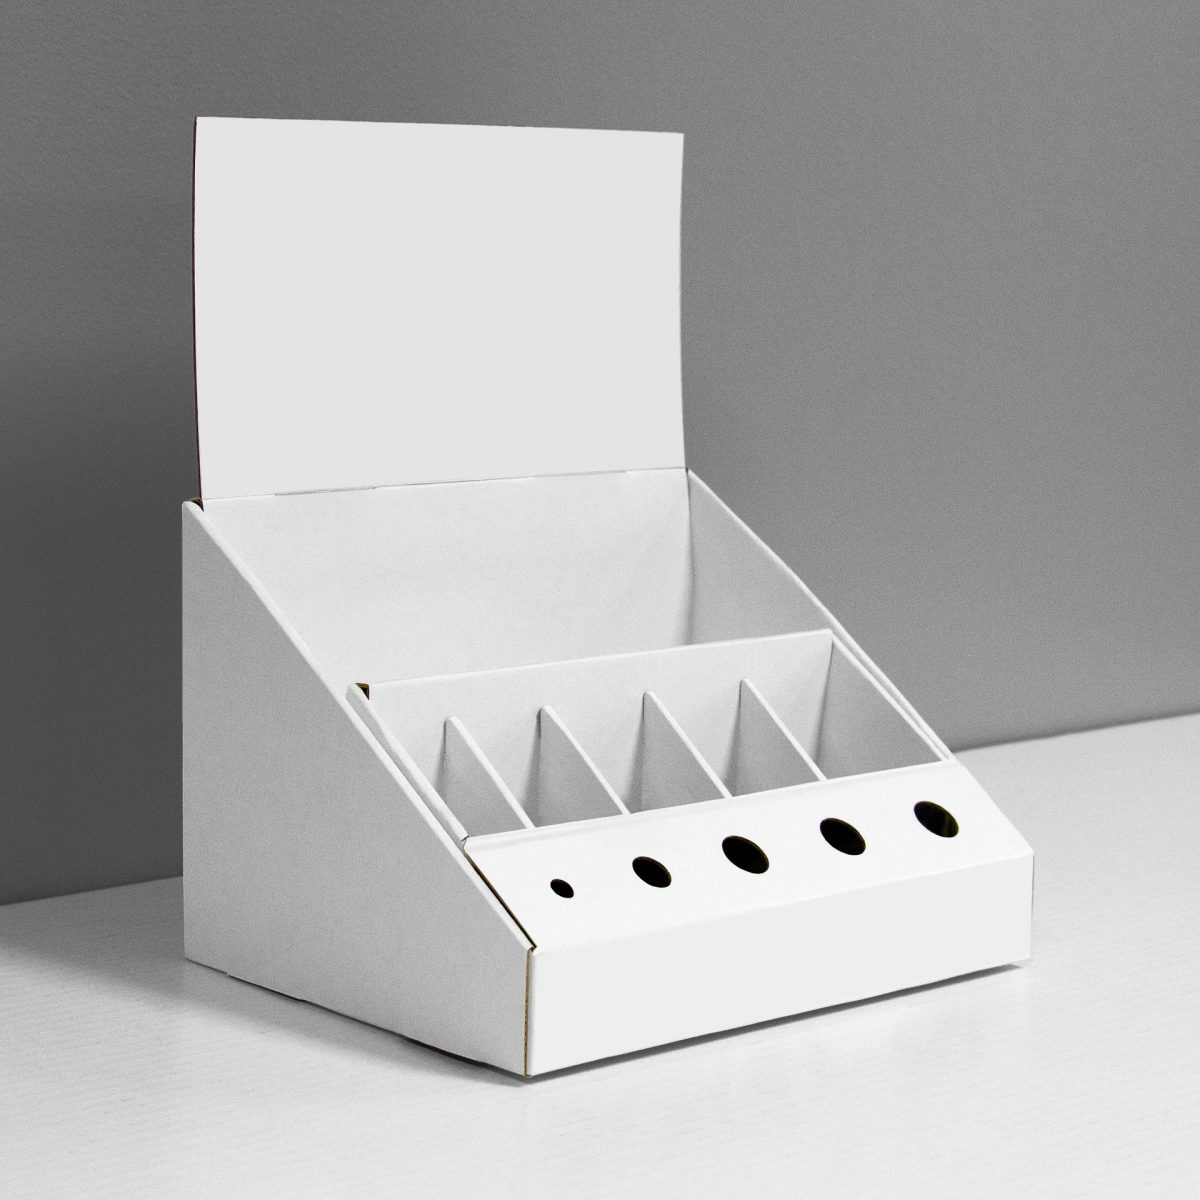 Cardboard counter display with custom inserts and header - white